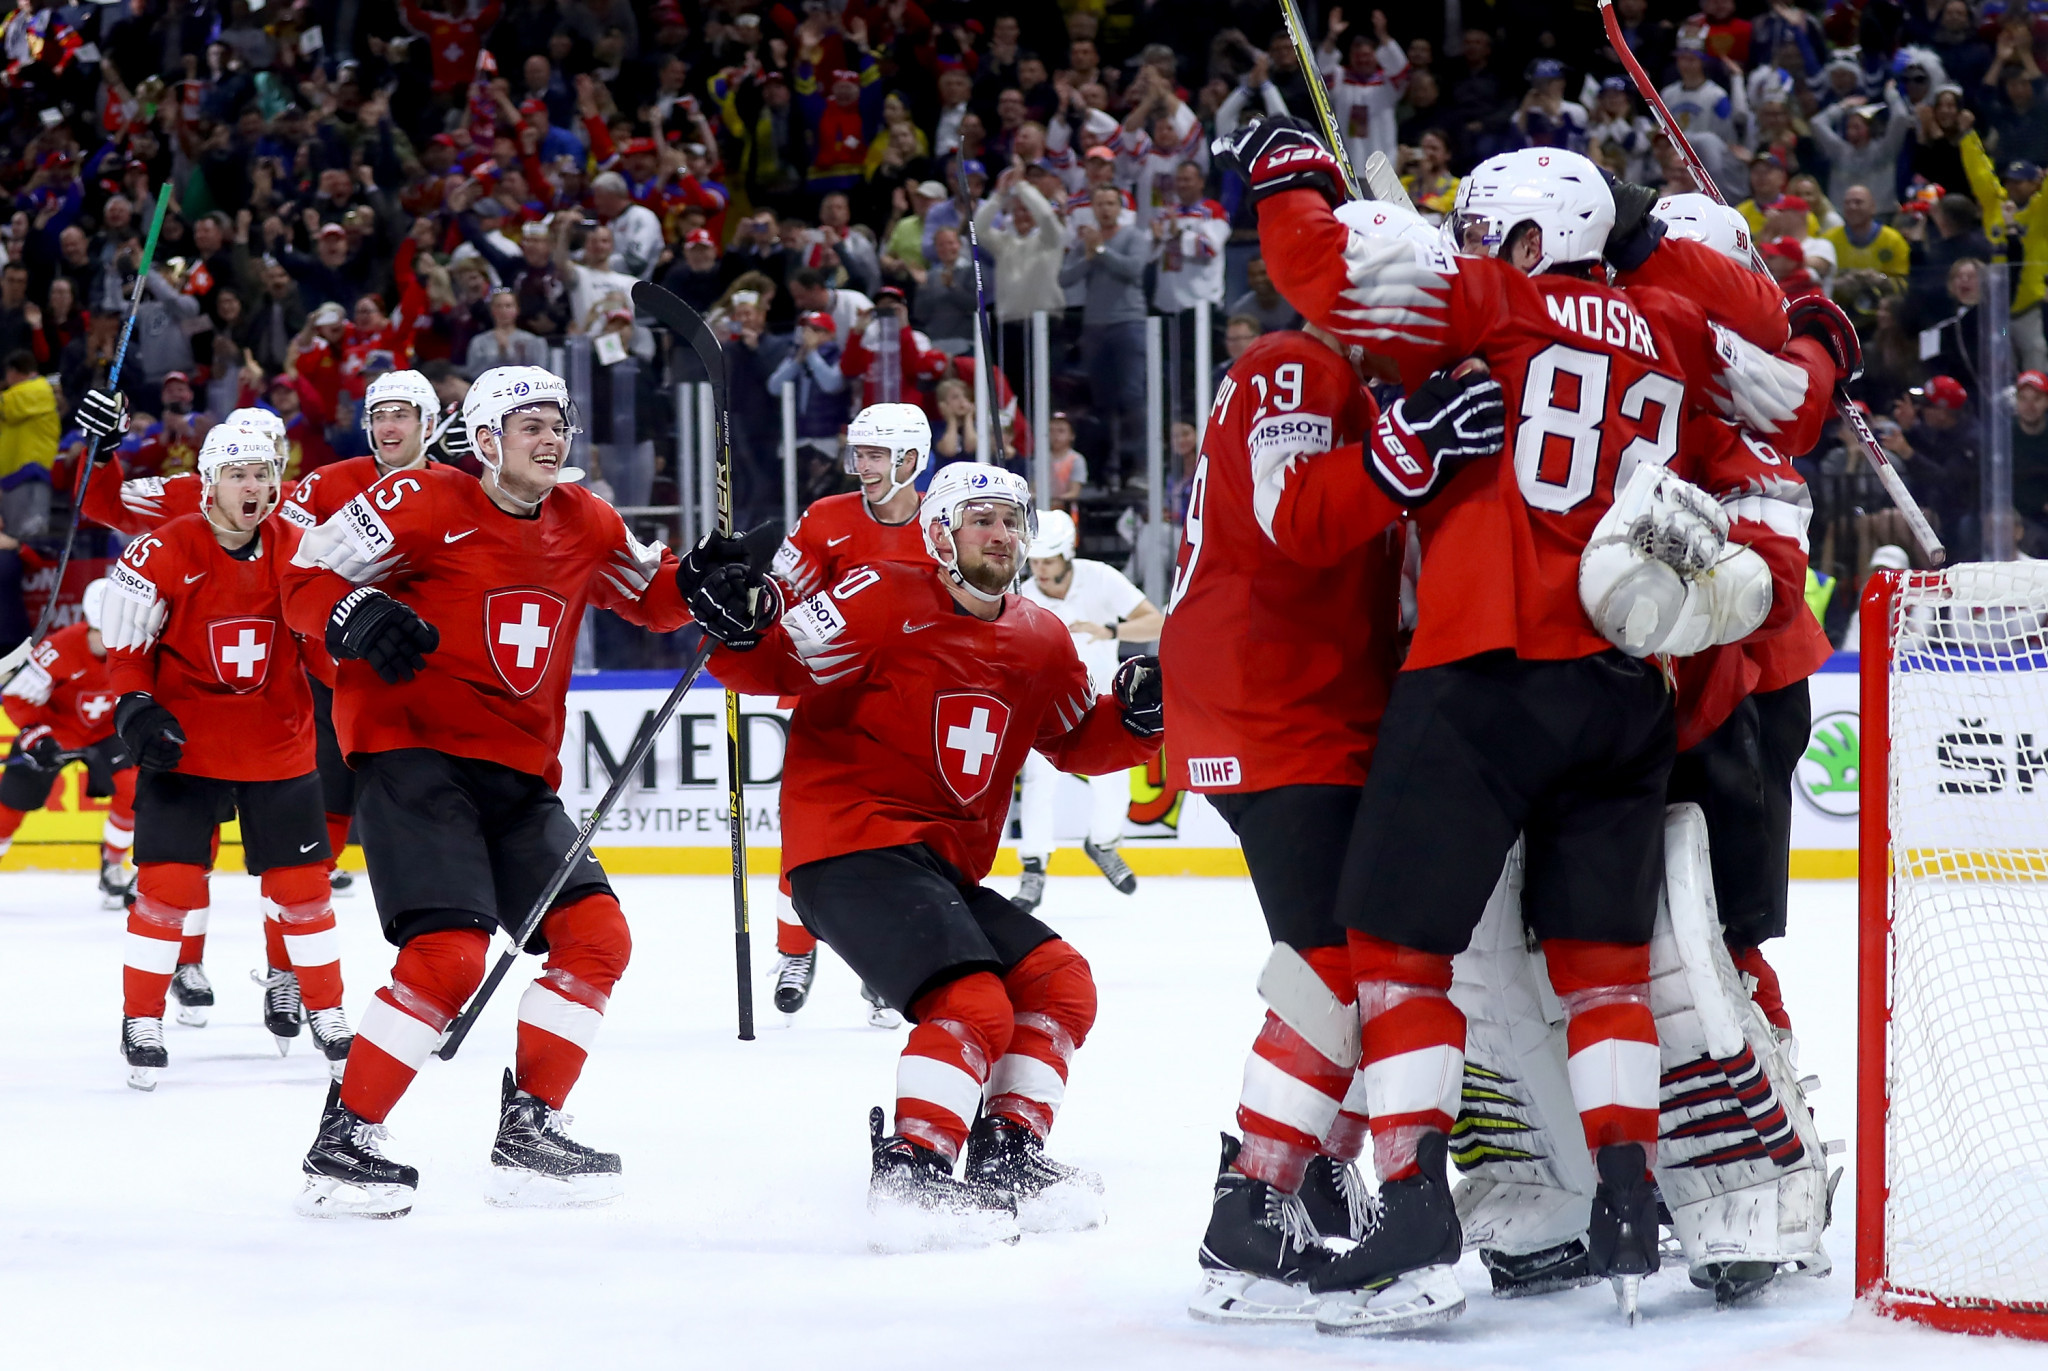 Switzerland earned a narrow win over Canada to reach the final ©Getty Images